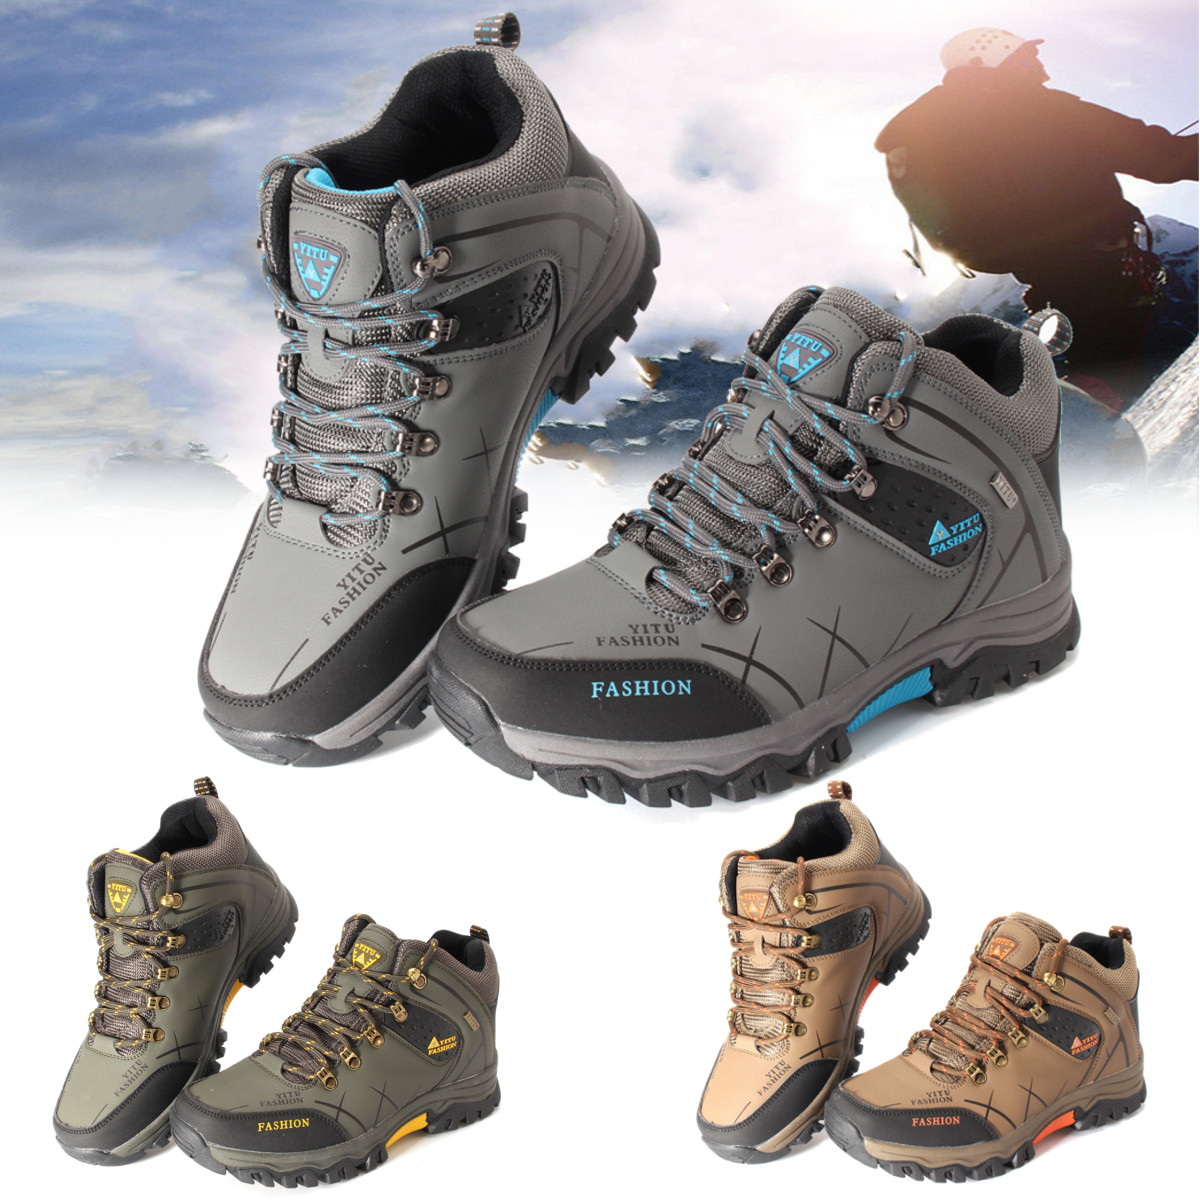 Mens Big Size Trail Hiking Boots Waterproof Athletic Non Slip Outdoors Shoes